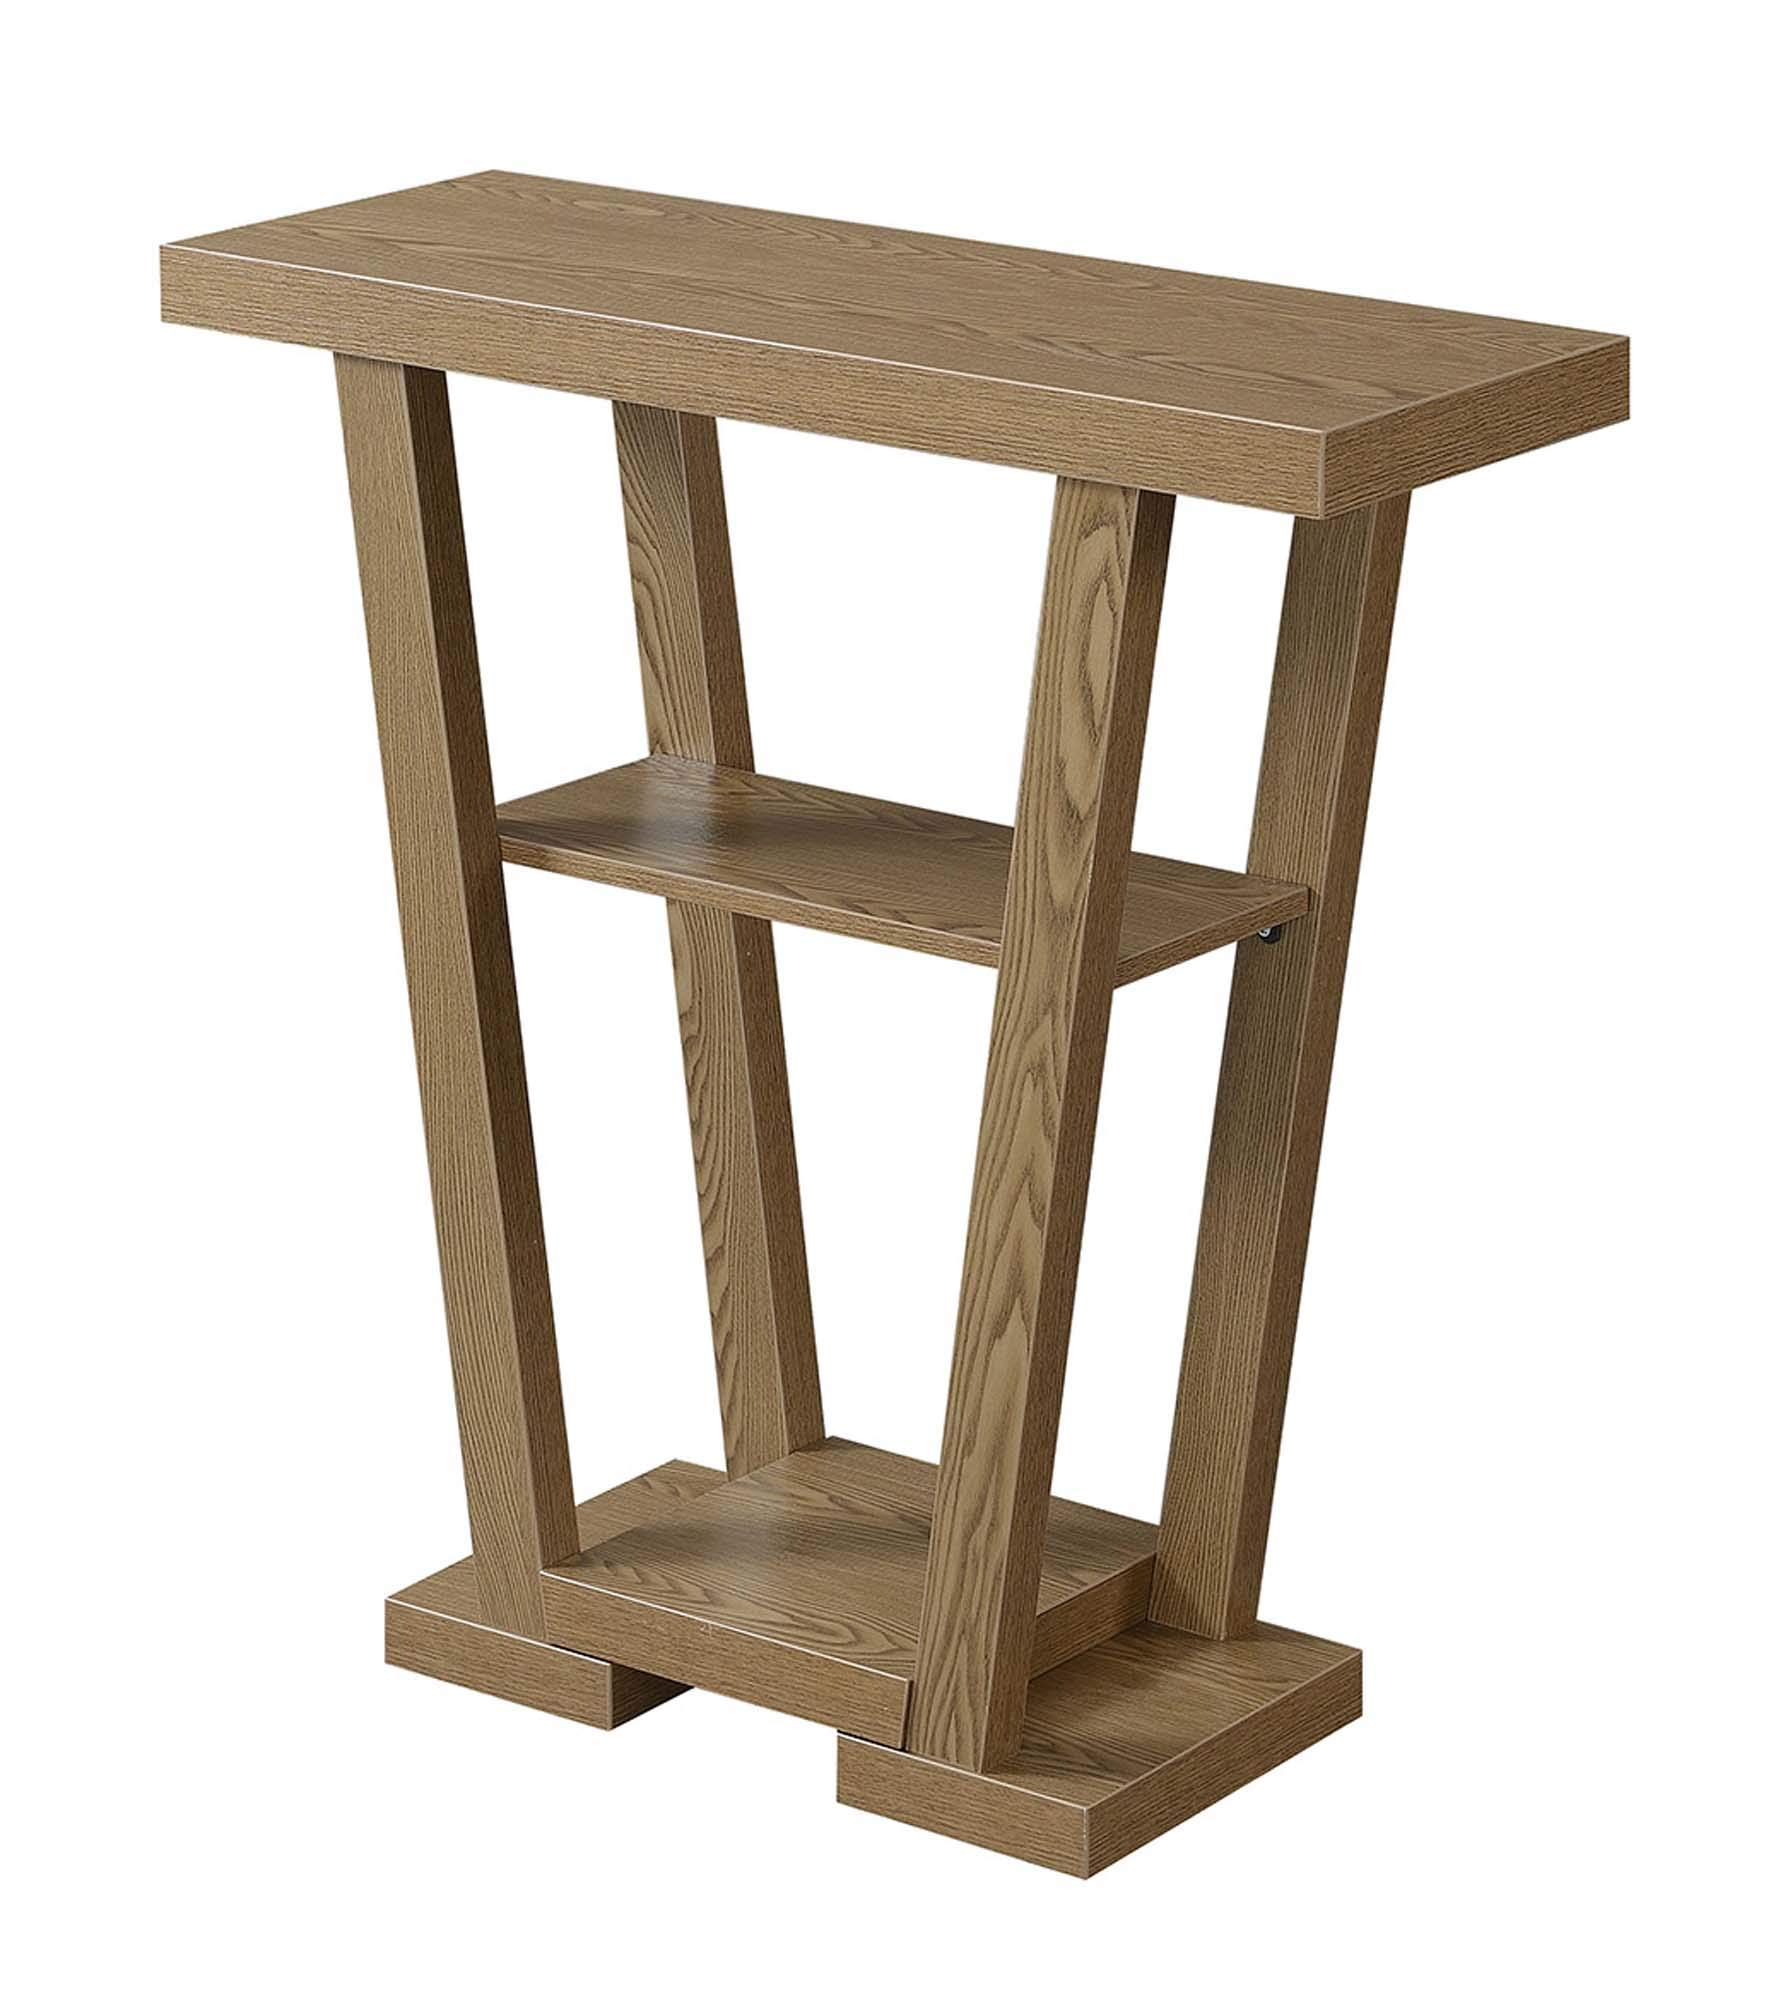 Convenience Concepts Newport V Console, Driftwood by Convenience Concepts